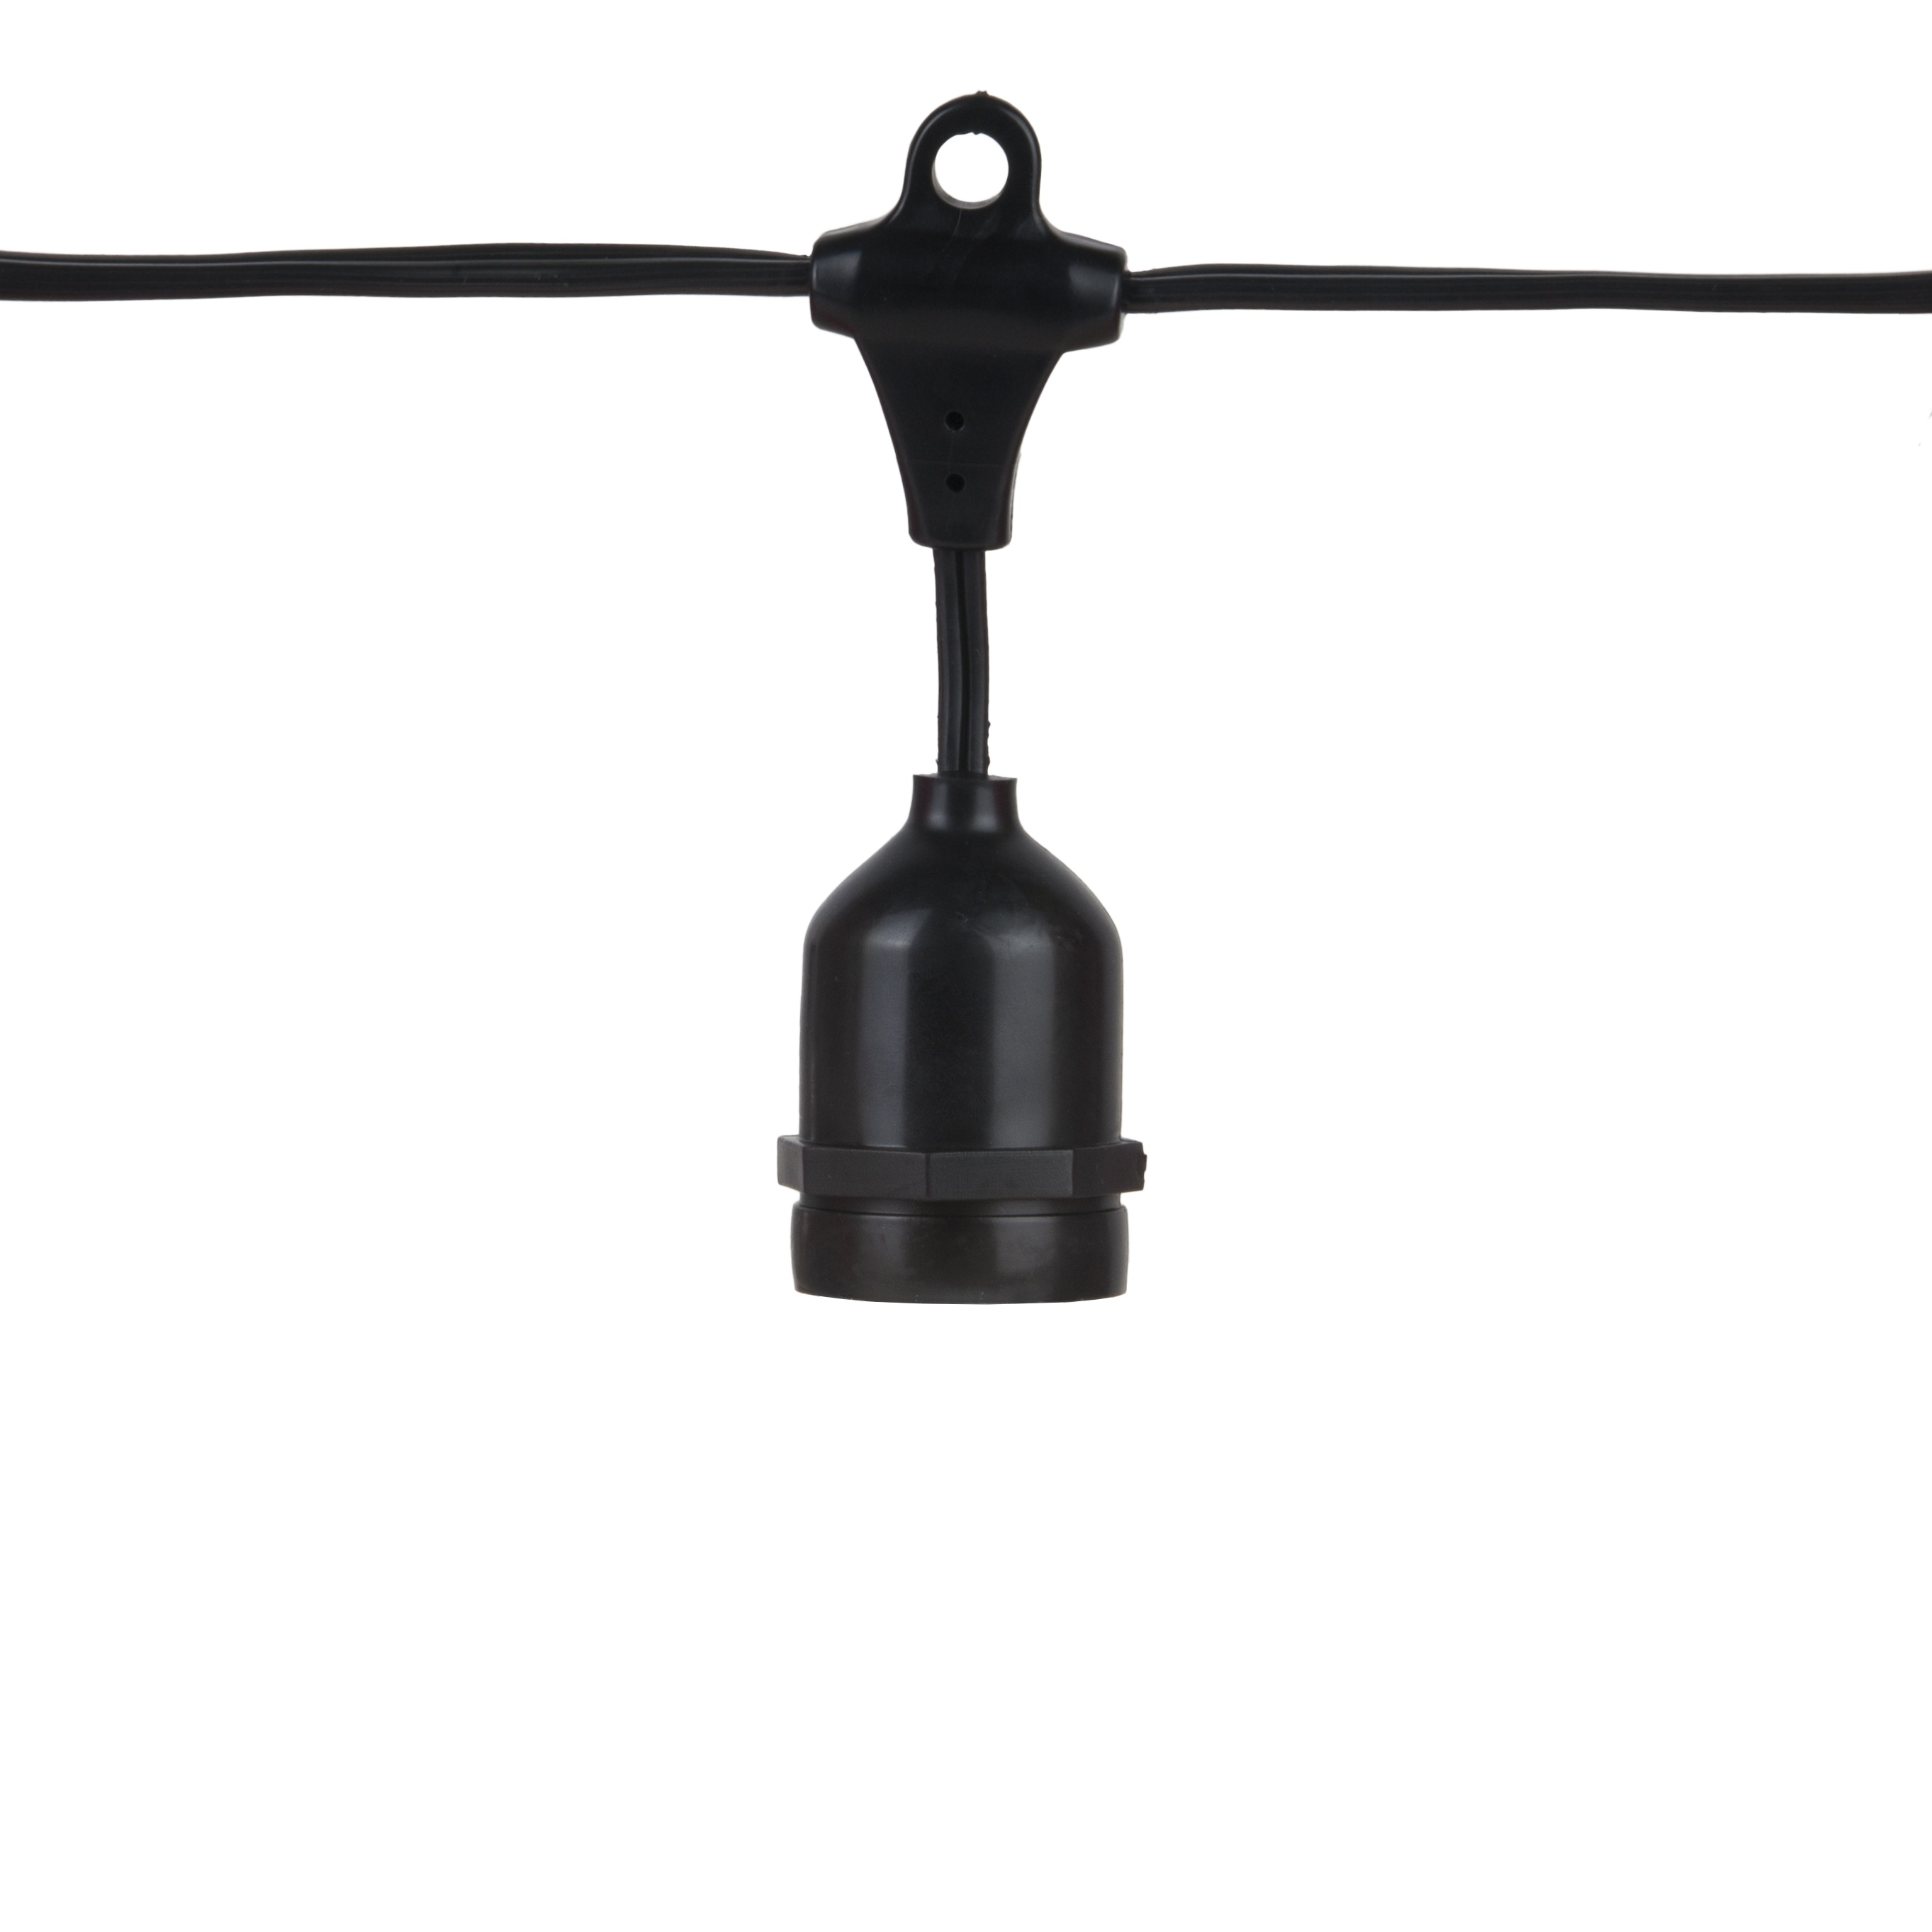 Outdoor String Lights Heavy Duty: Commercial Patio Light String, Suspended E26 Medium